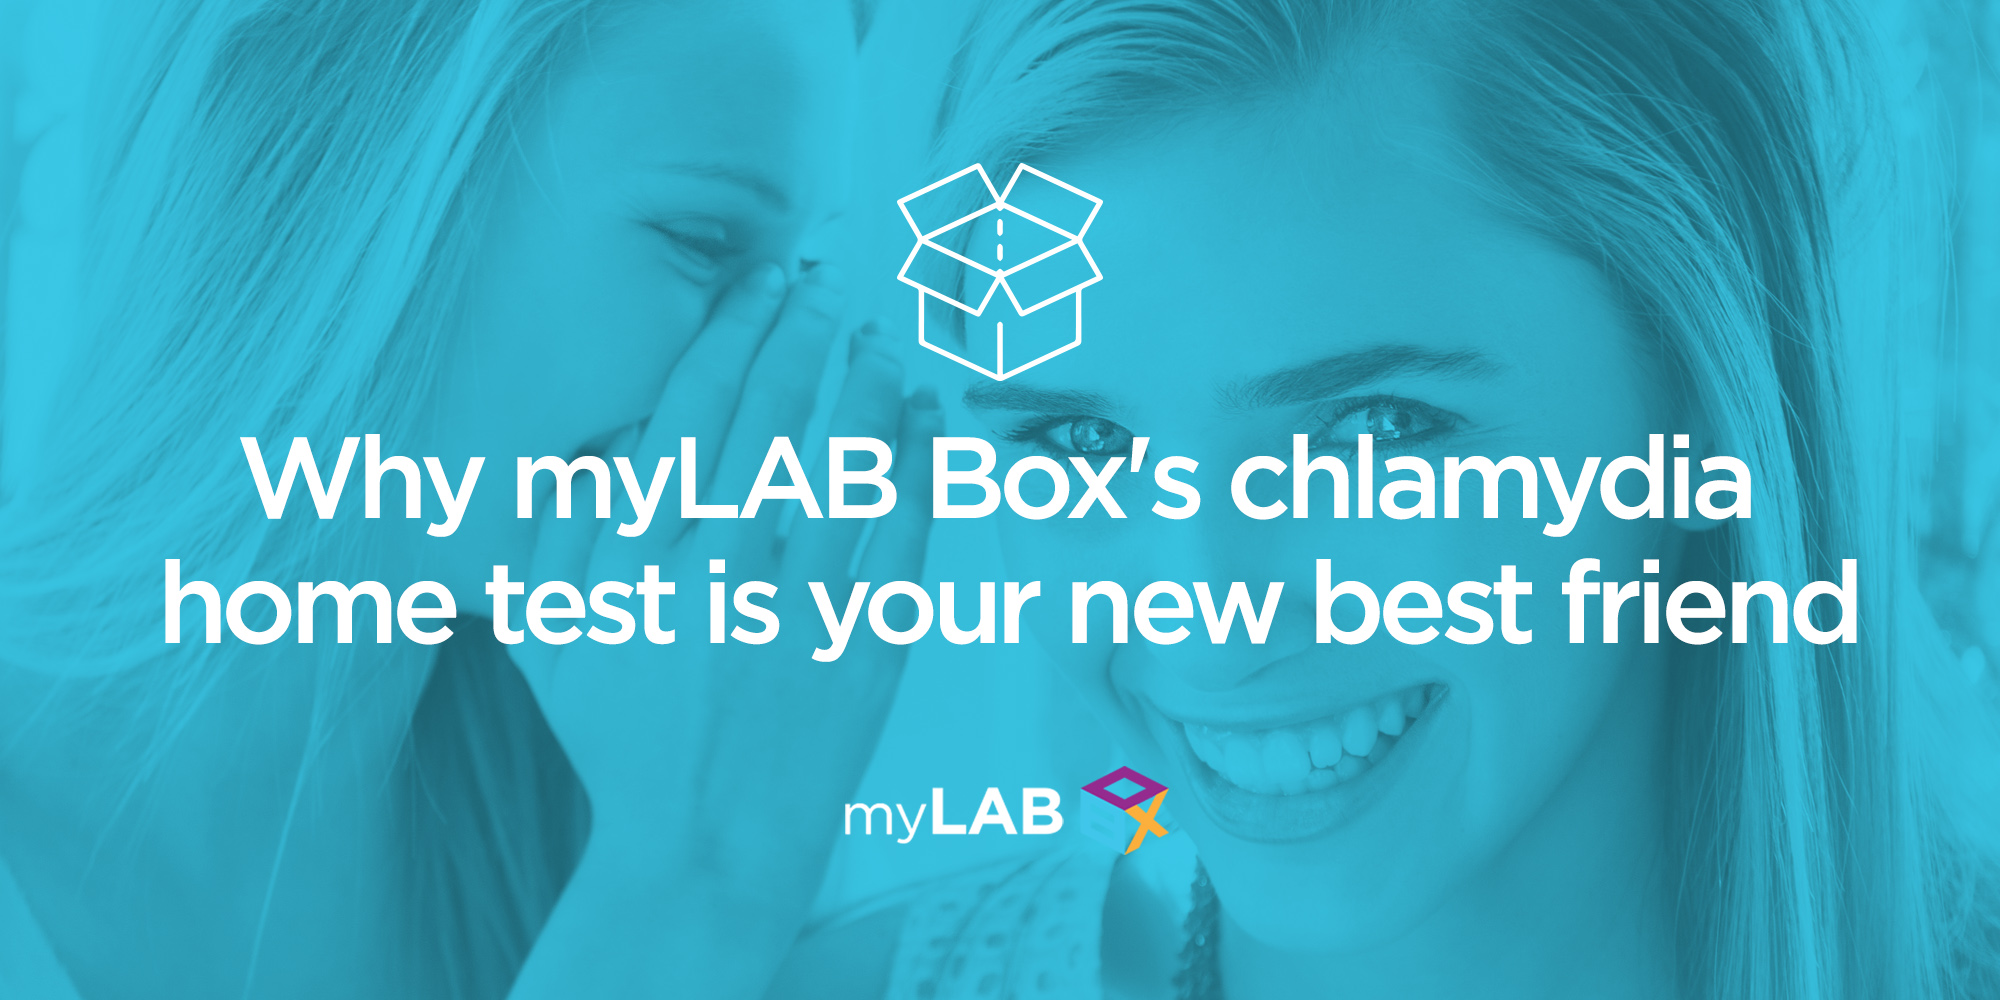 Why myLAB Box's chlamydia home test is your new best friend